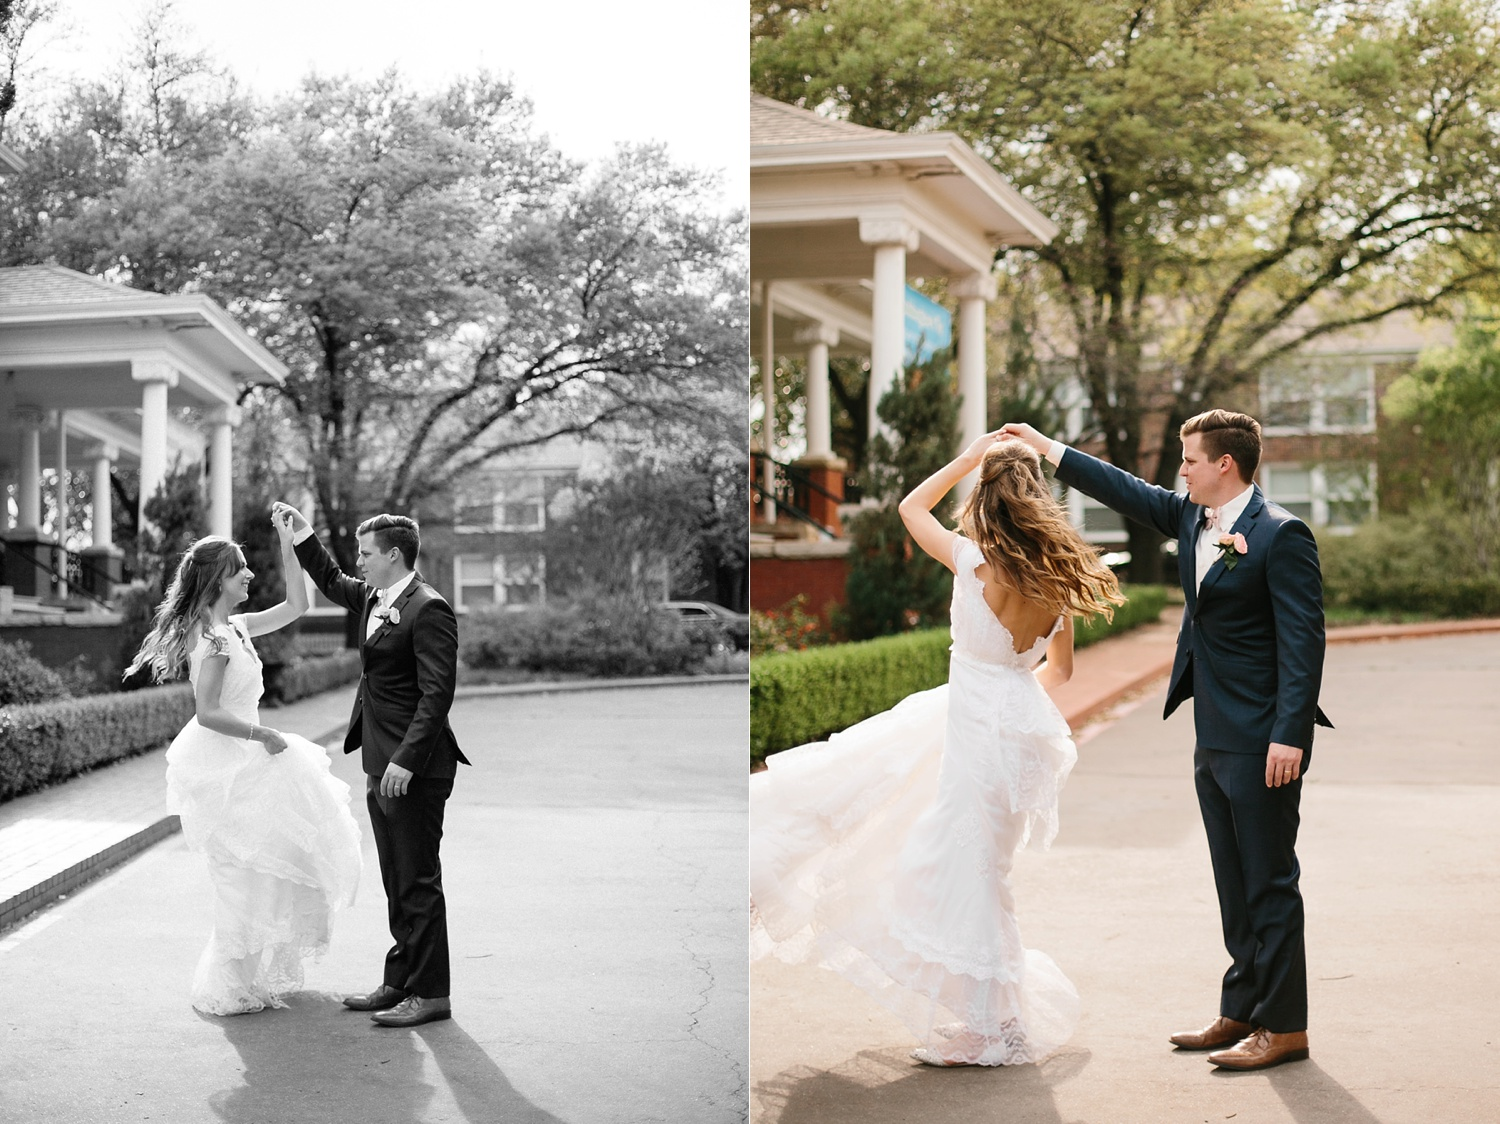 Amber + Daniel an intimate, simple, spring ceremony at Heard Craig Center and reception at Gather in McKinney, Texas by North Texas Wedding Photographer Rachel Meagan Photography 095